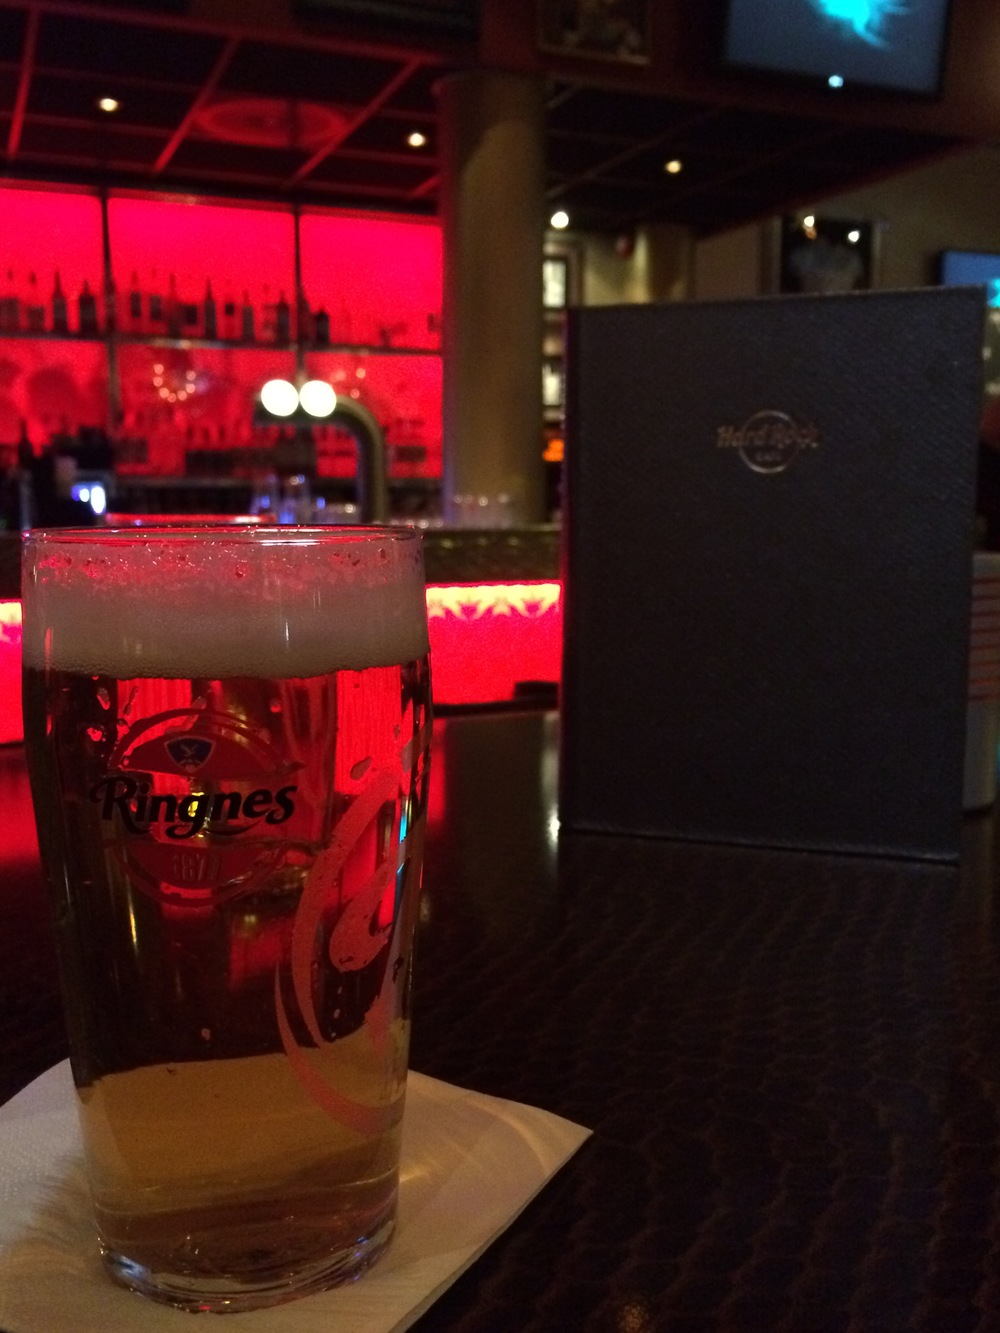 Despite the price, I enjoyed the beer at Hard Rock Cafe Oslo.